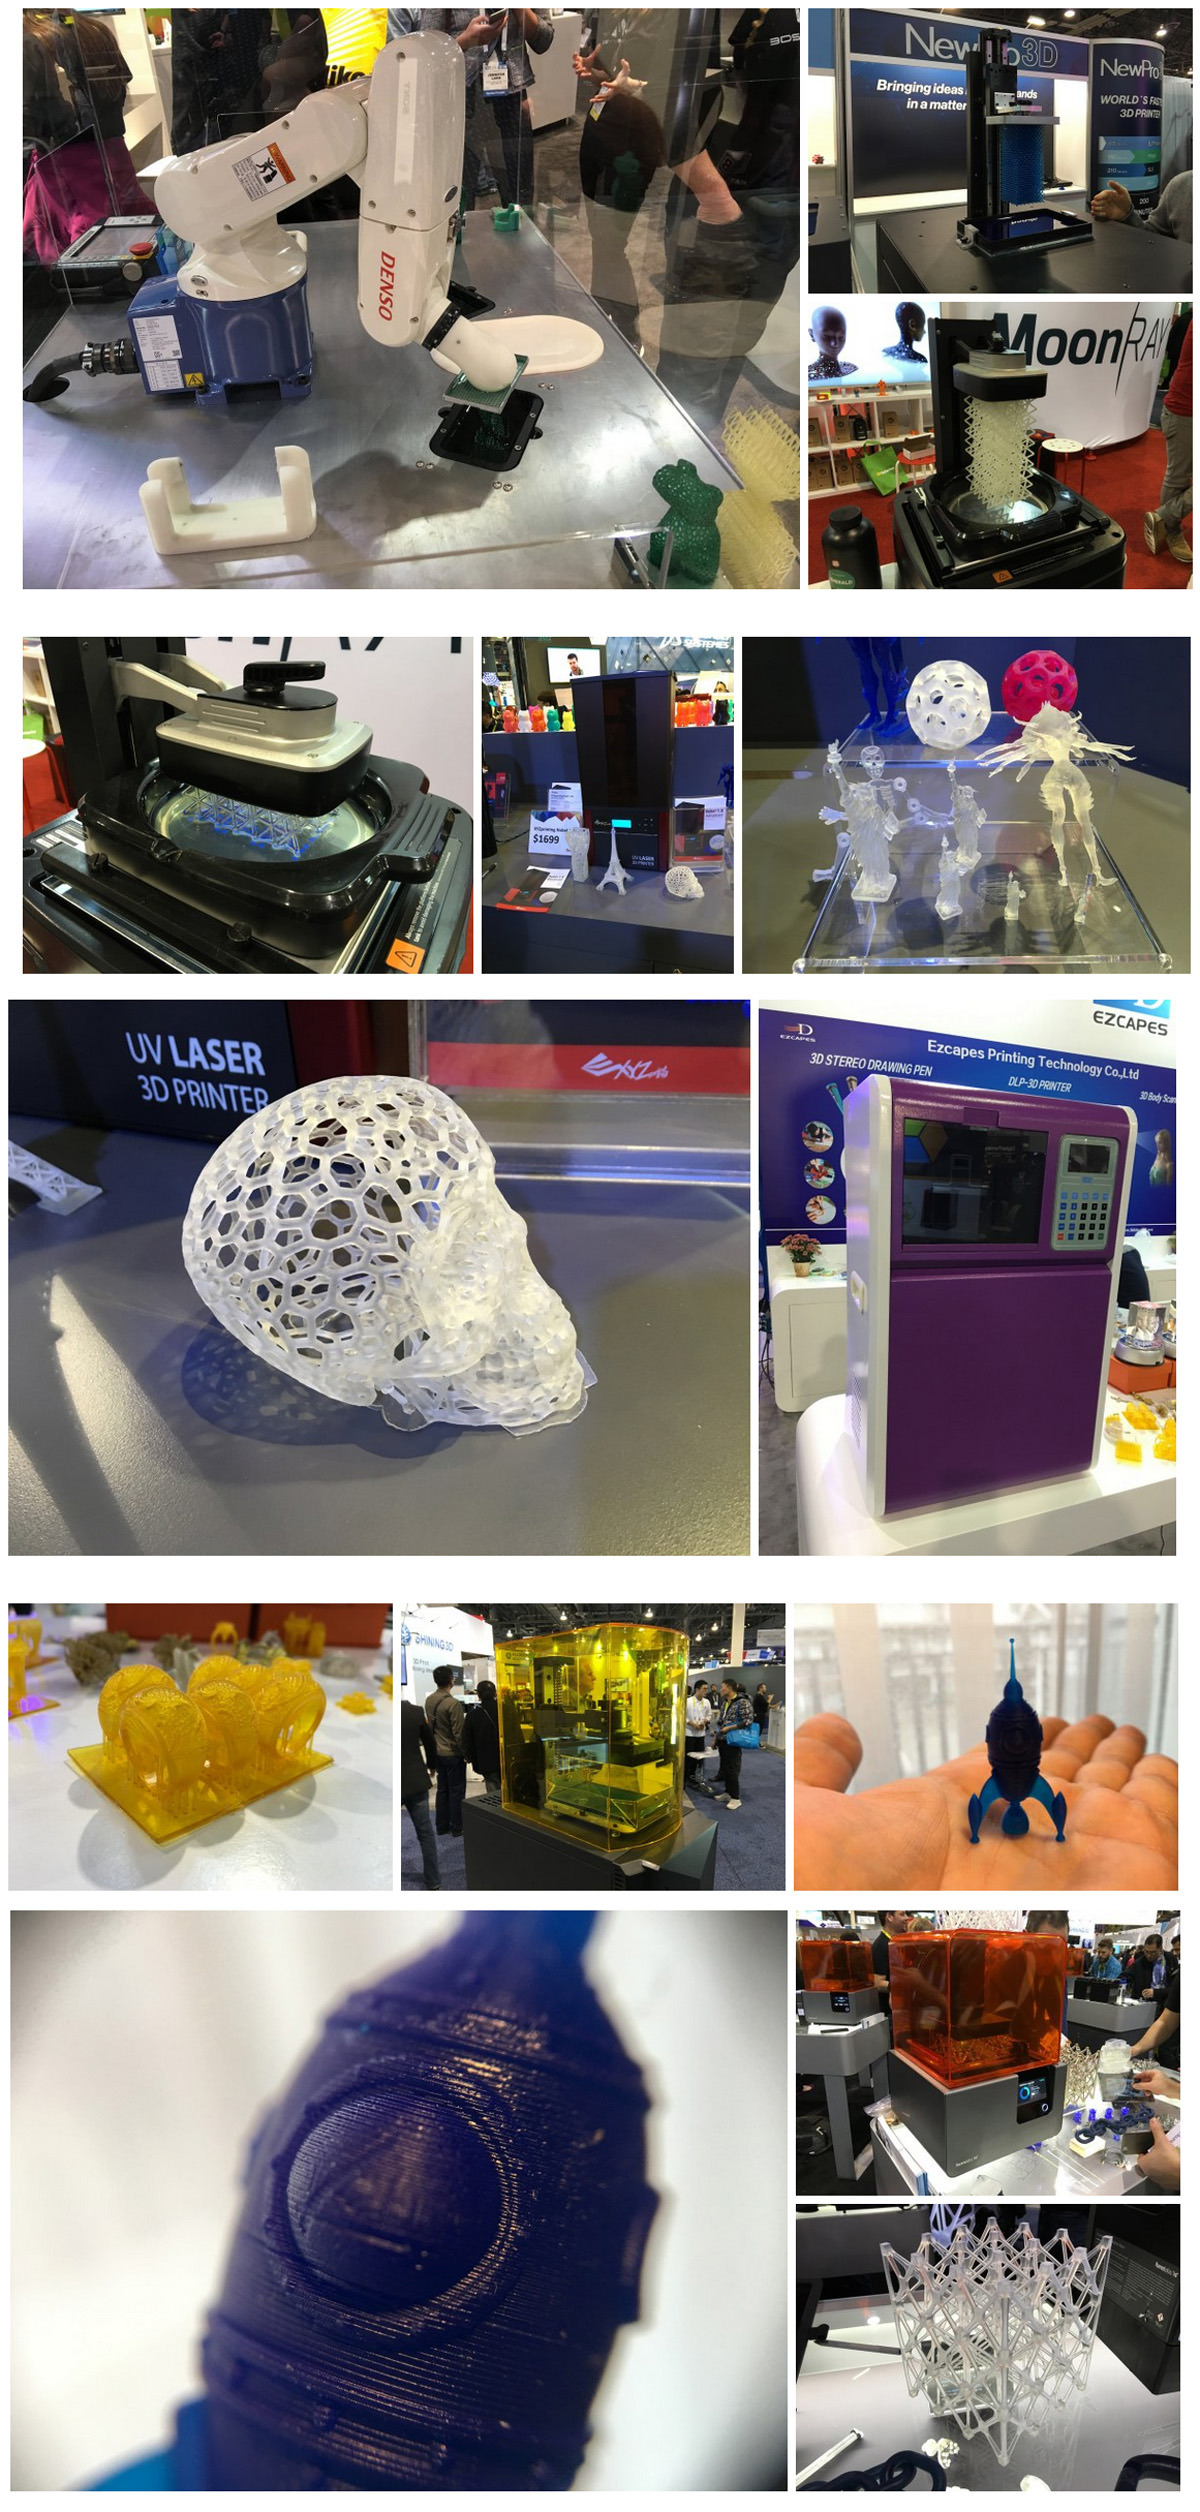 3D printing at CES from john biehler